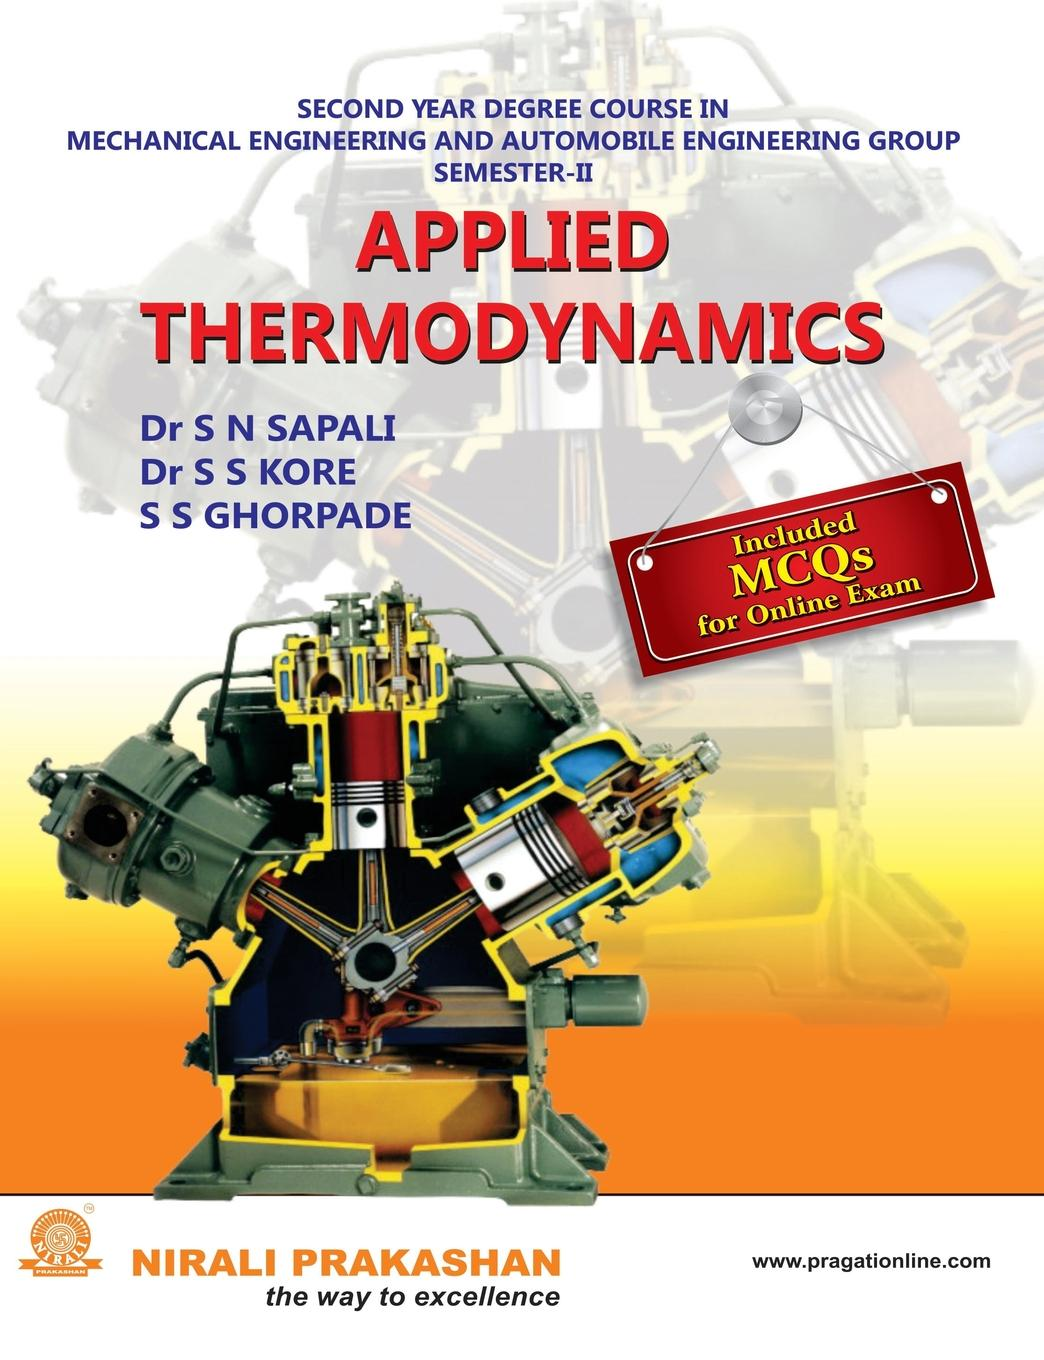 DR S S KORE, S S GHORPADE, DR S N SAPALI APPLIED THERMODYNAMICS 29cc 4 hole engine parts set for 1 5 fg baja hpi 5t 5b ss ts h85160 wholesale and retail